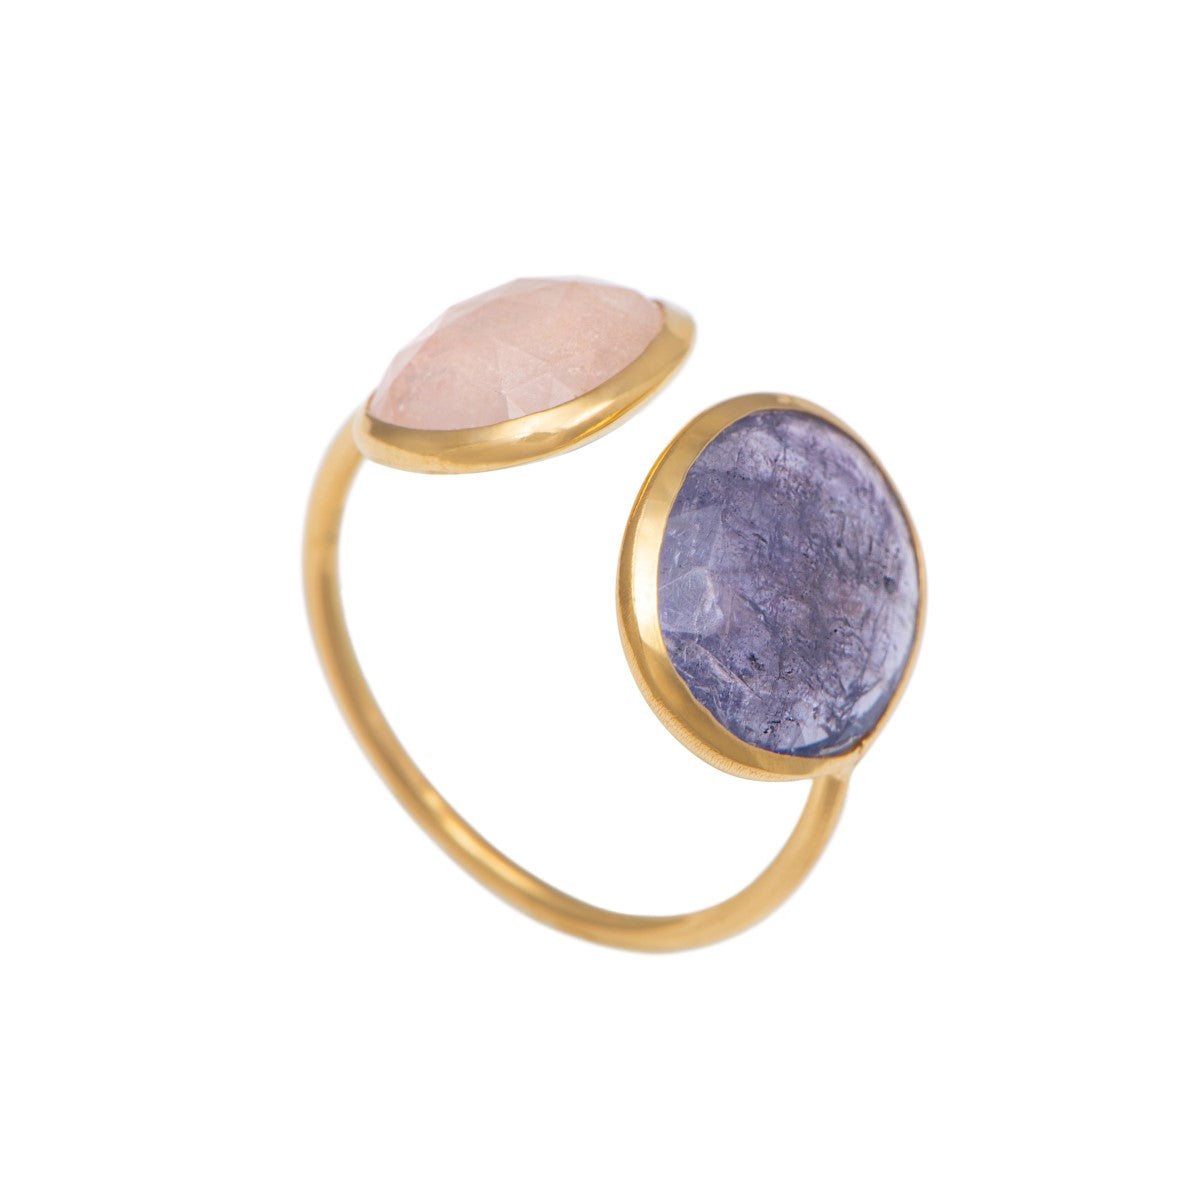 Gold Plated Sterling Silver Two Gemstone Ring with Morganite and Tanzanite